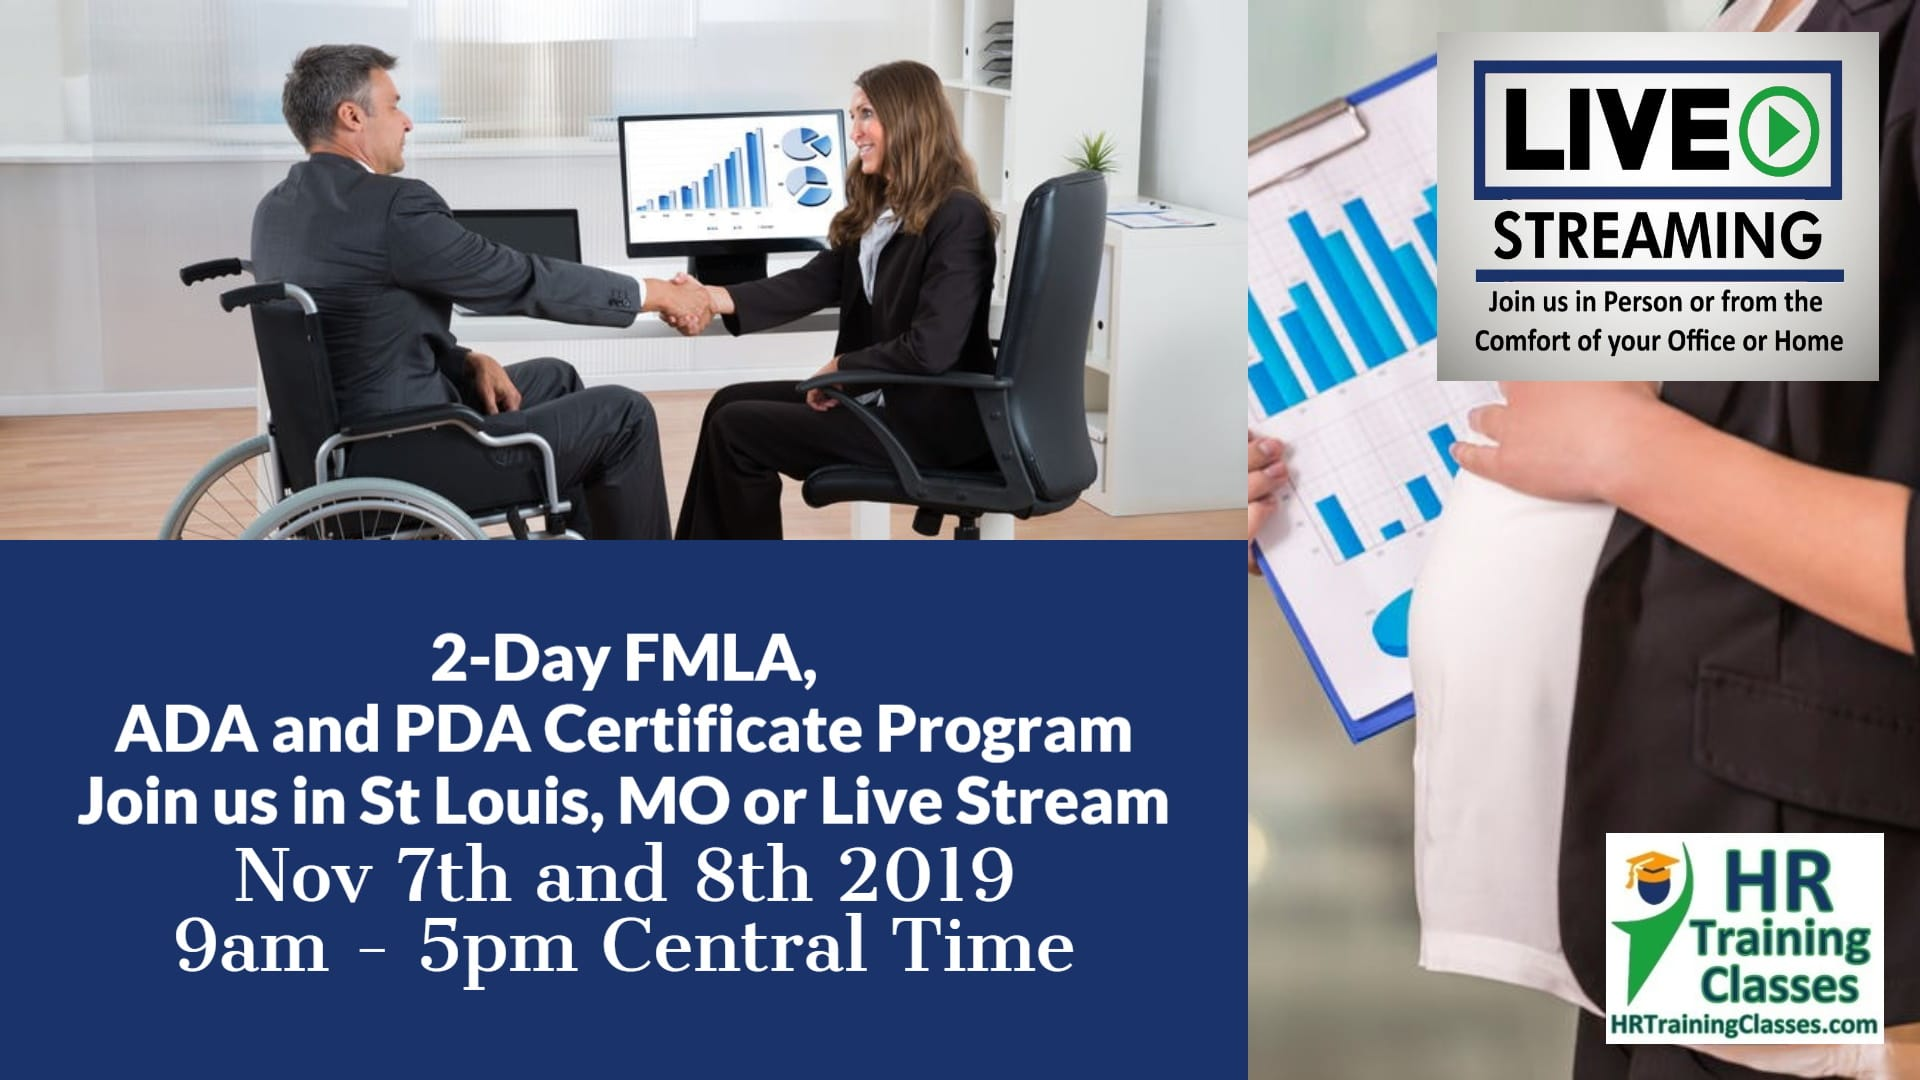 2-Day FMLA, ADA and PDA Certificate Program (Starts 11-7-2019)